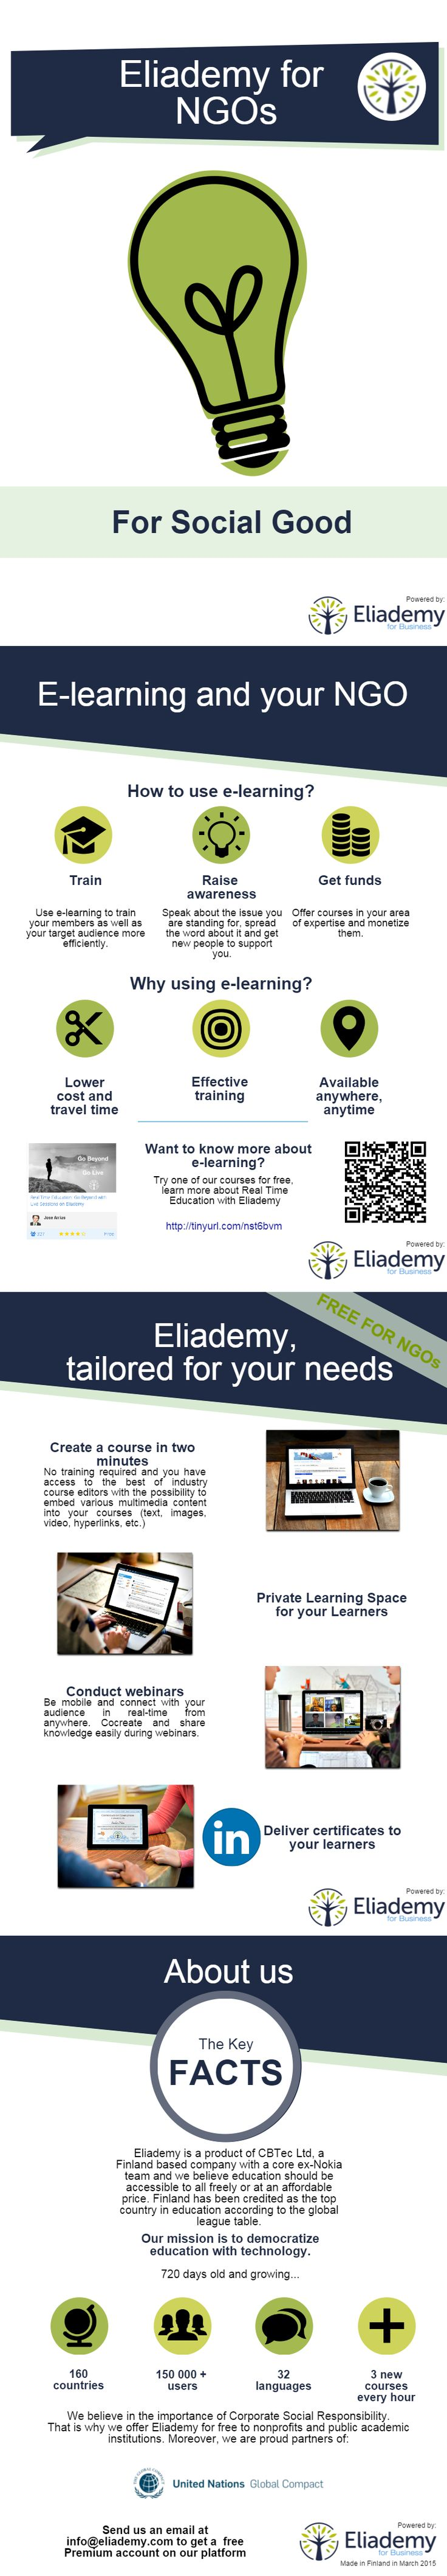 Eliademy for nonprofits. See how Eliademy is specially tailored for your needs! #ngo #socialgood #elearning #brochure